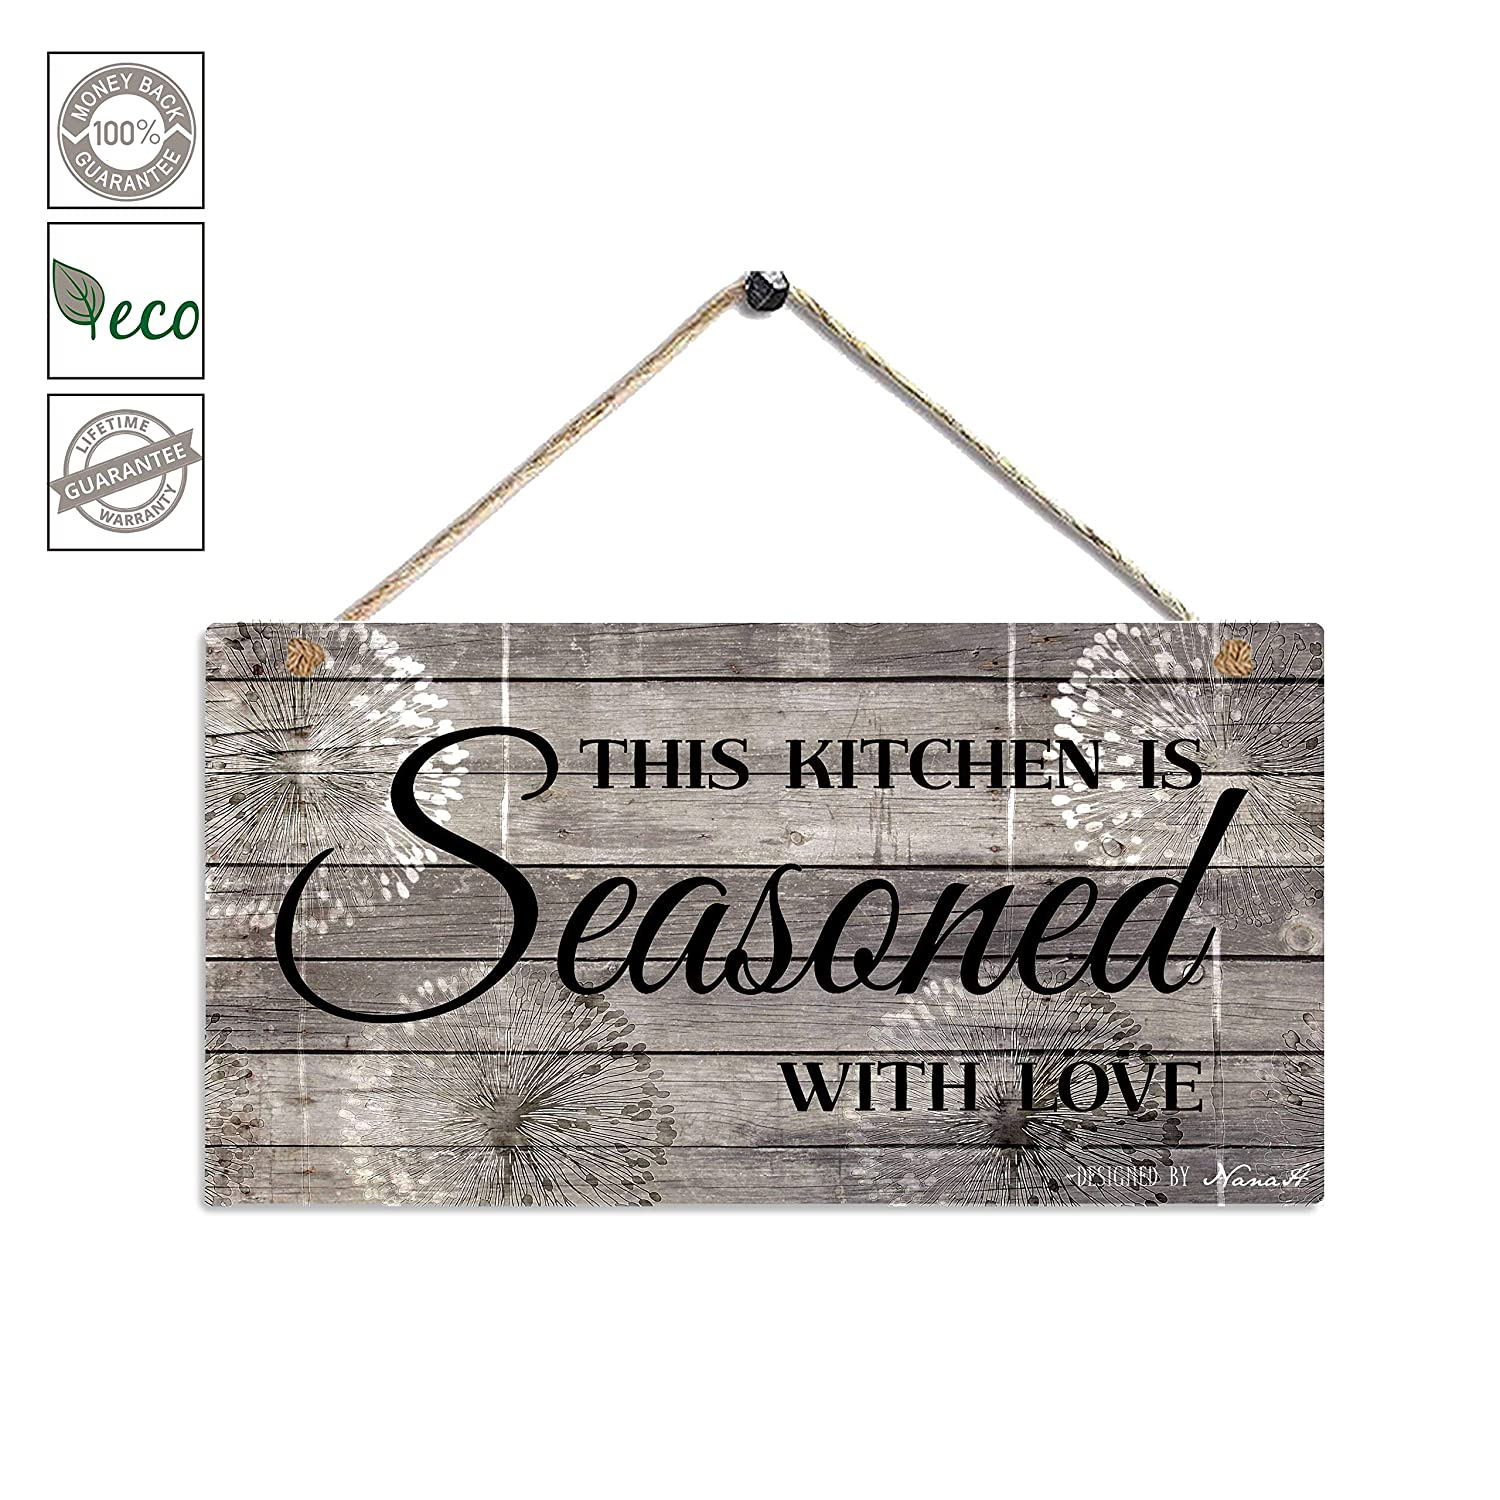 "Farmhouse Kitchen Decor, Rustic Kitchen Signs Wall Decor, Printed Wood Wall Art-This Kitchen is Seasoned with Love-Kitchen Wall Decor 11.5"" x 6"""